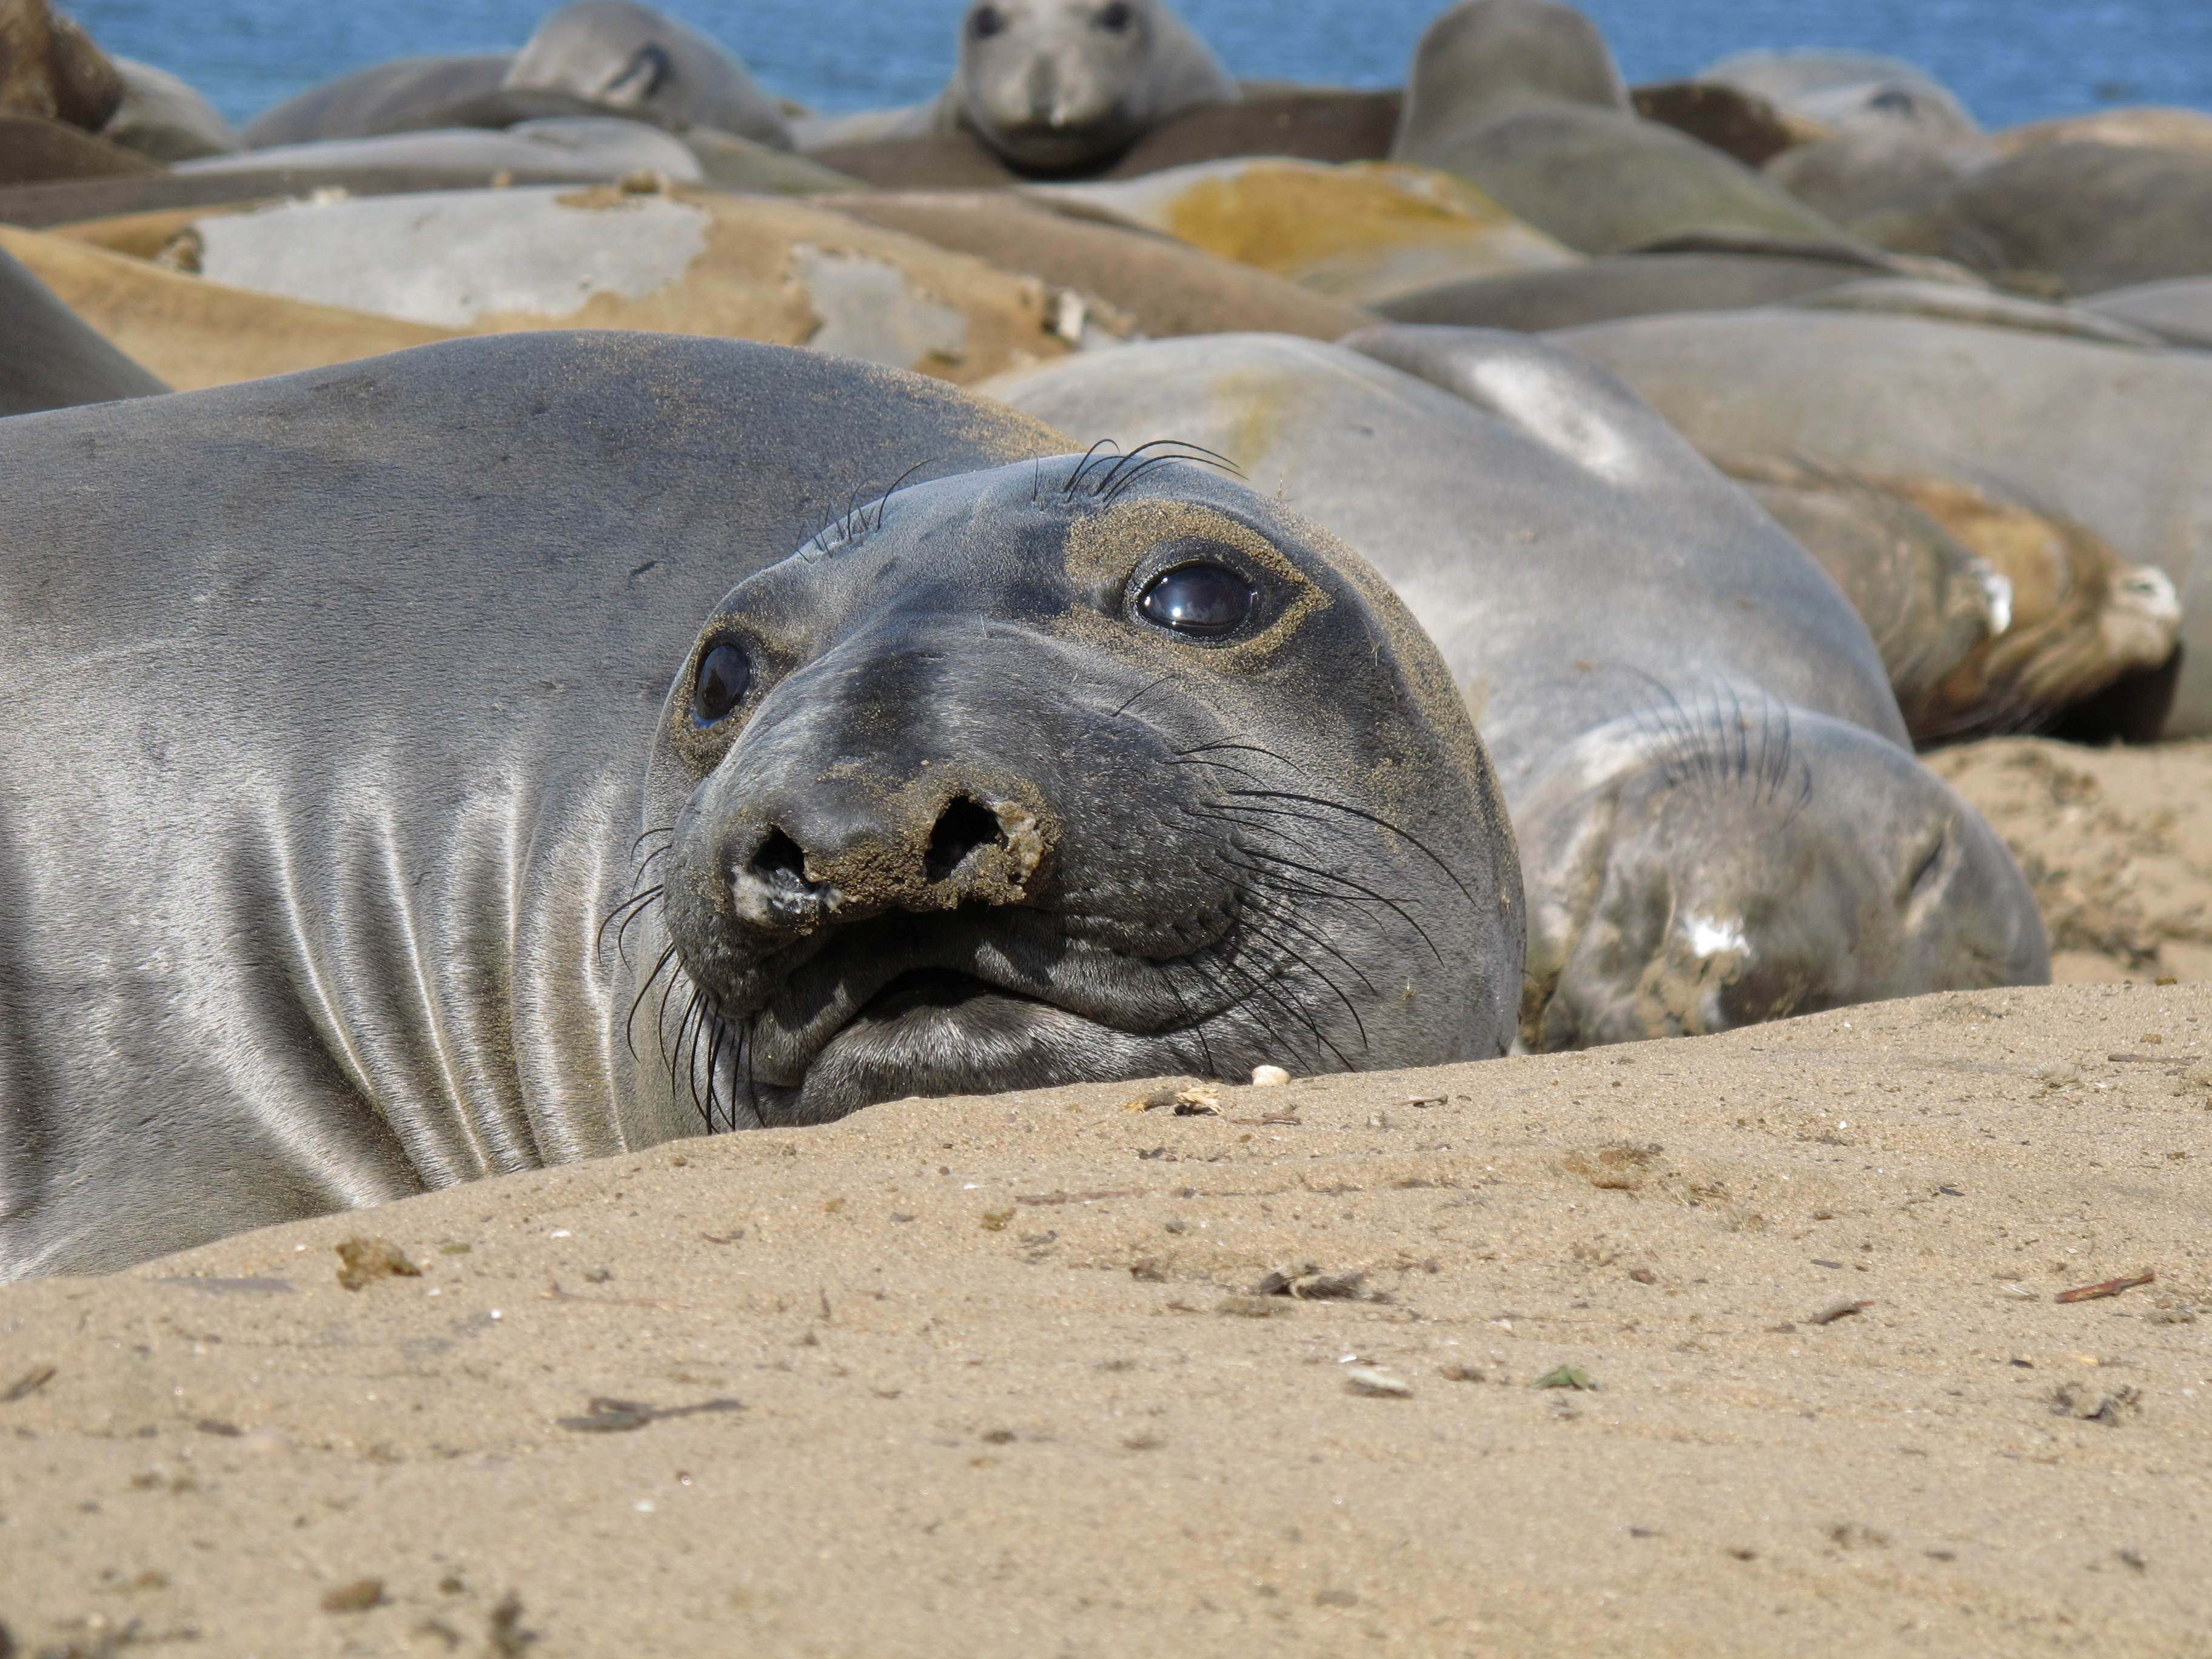 Female northern elephant seals rest at Ano Nuevo State Park, California, U.S. in an undated photograph. Taiki Adachi/Handout via REUTERS